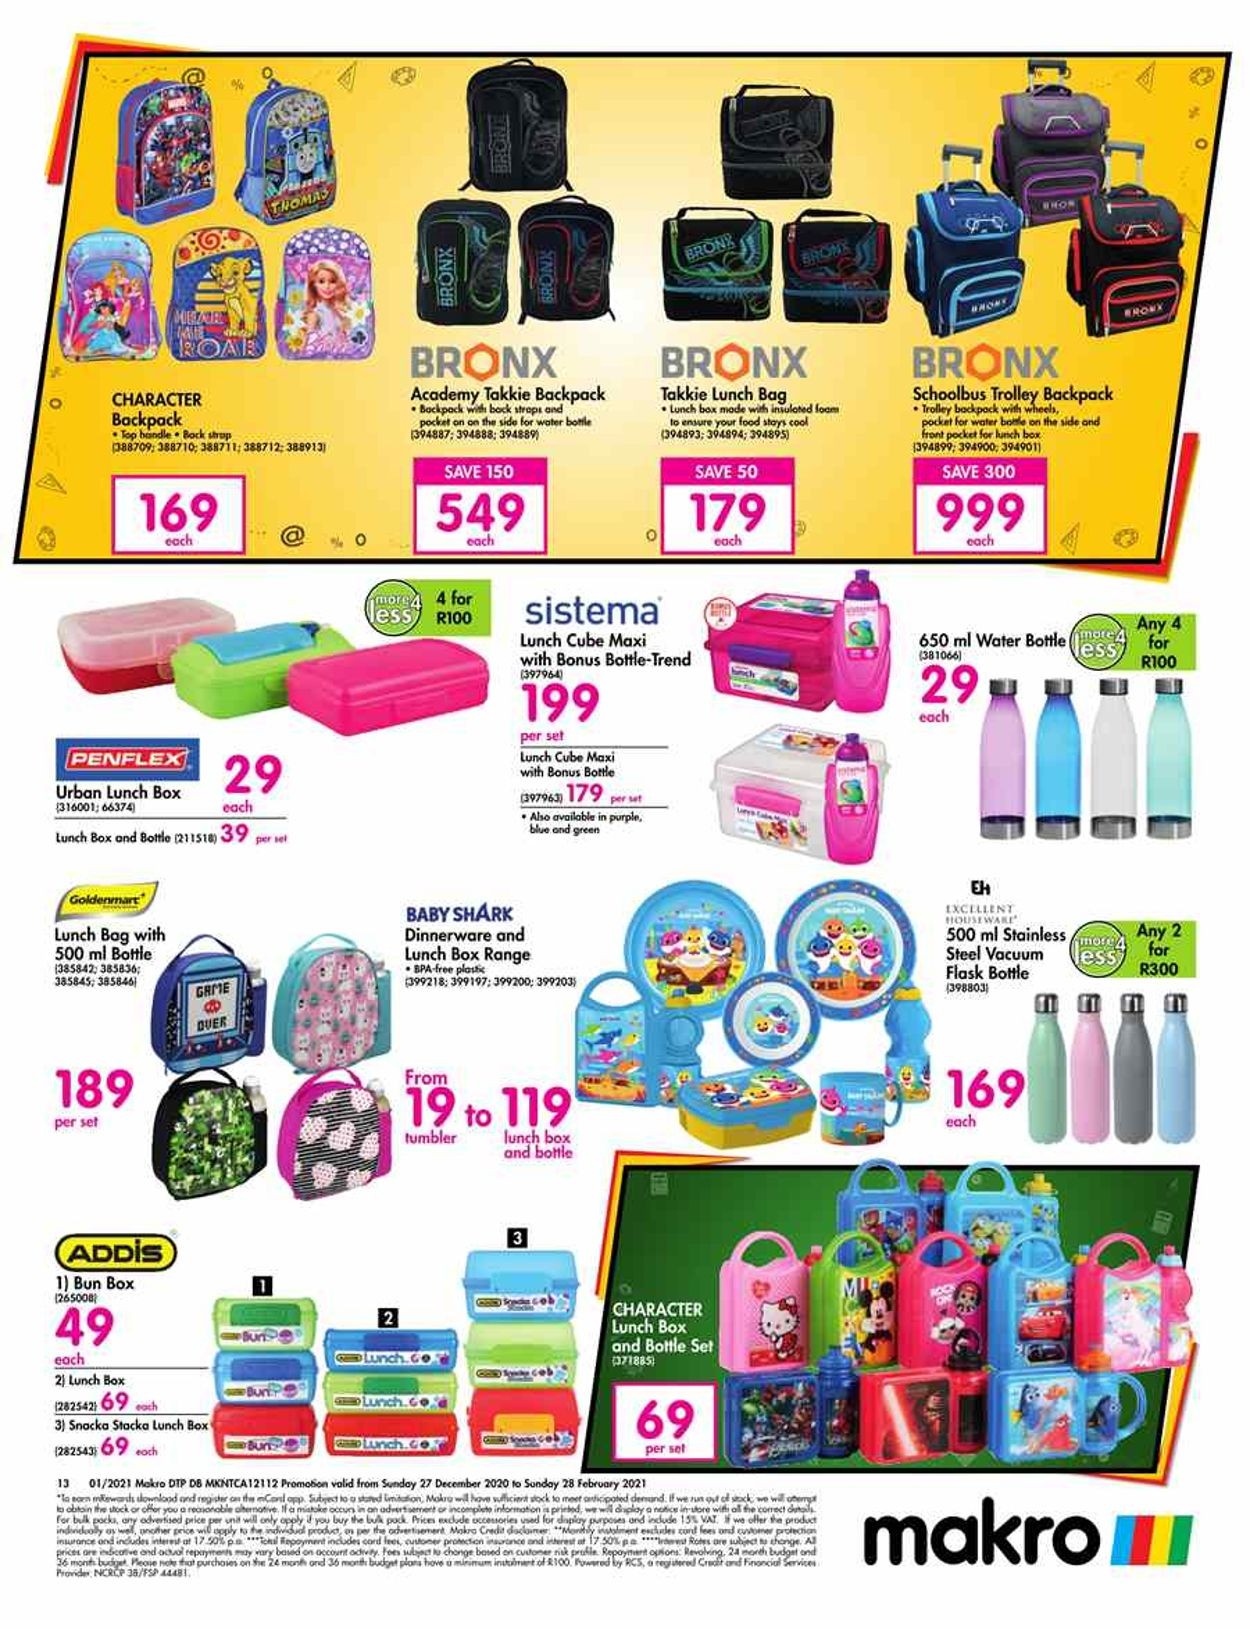 Makro Back To School 2021 Catalogue - 2020/12/27-2021/02/28 (Page 13)